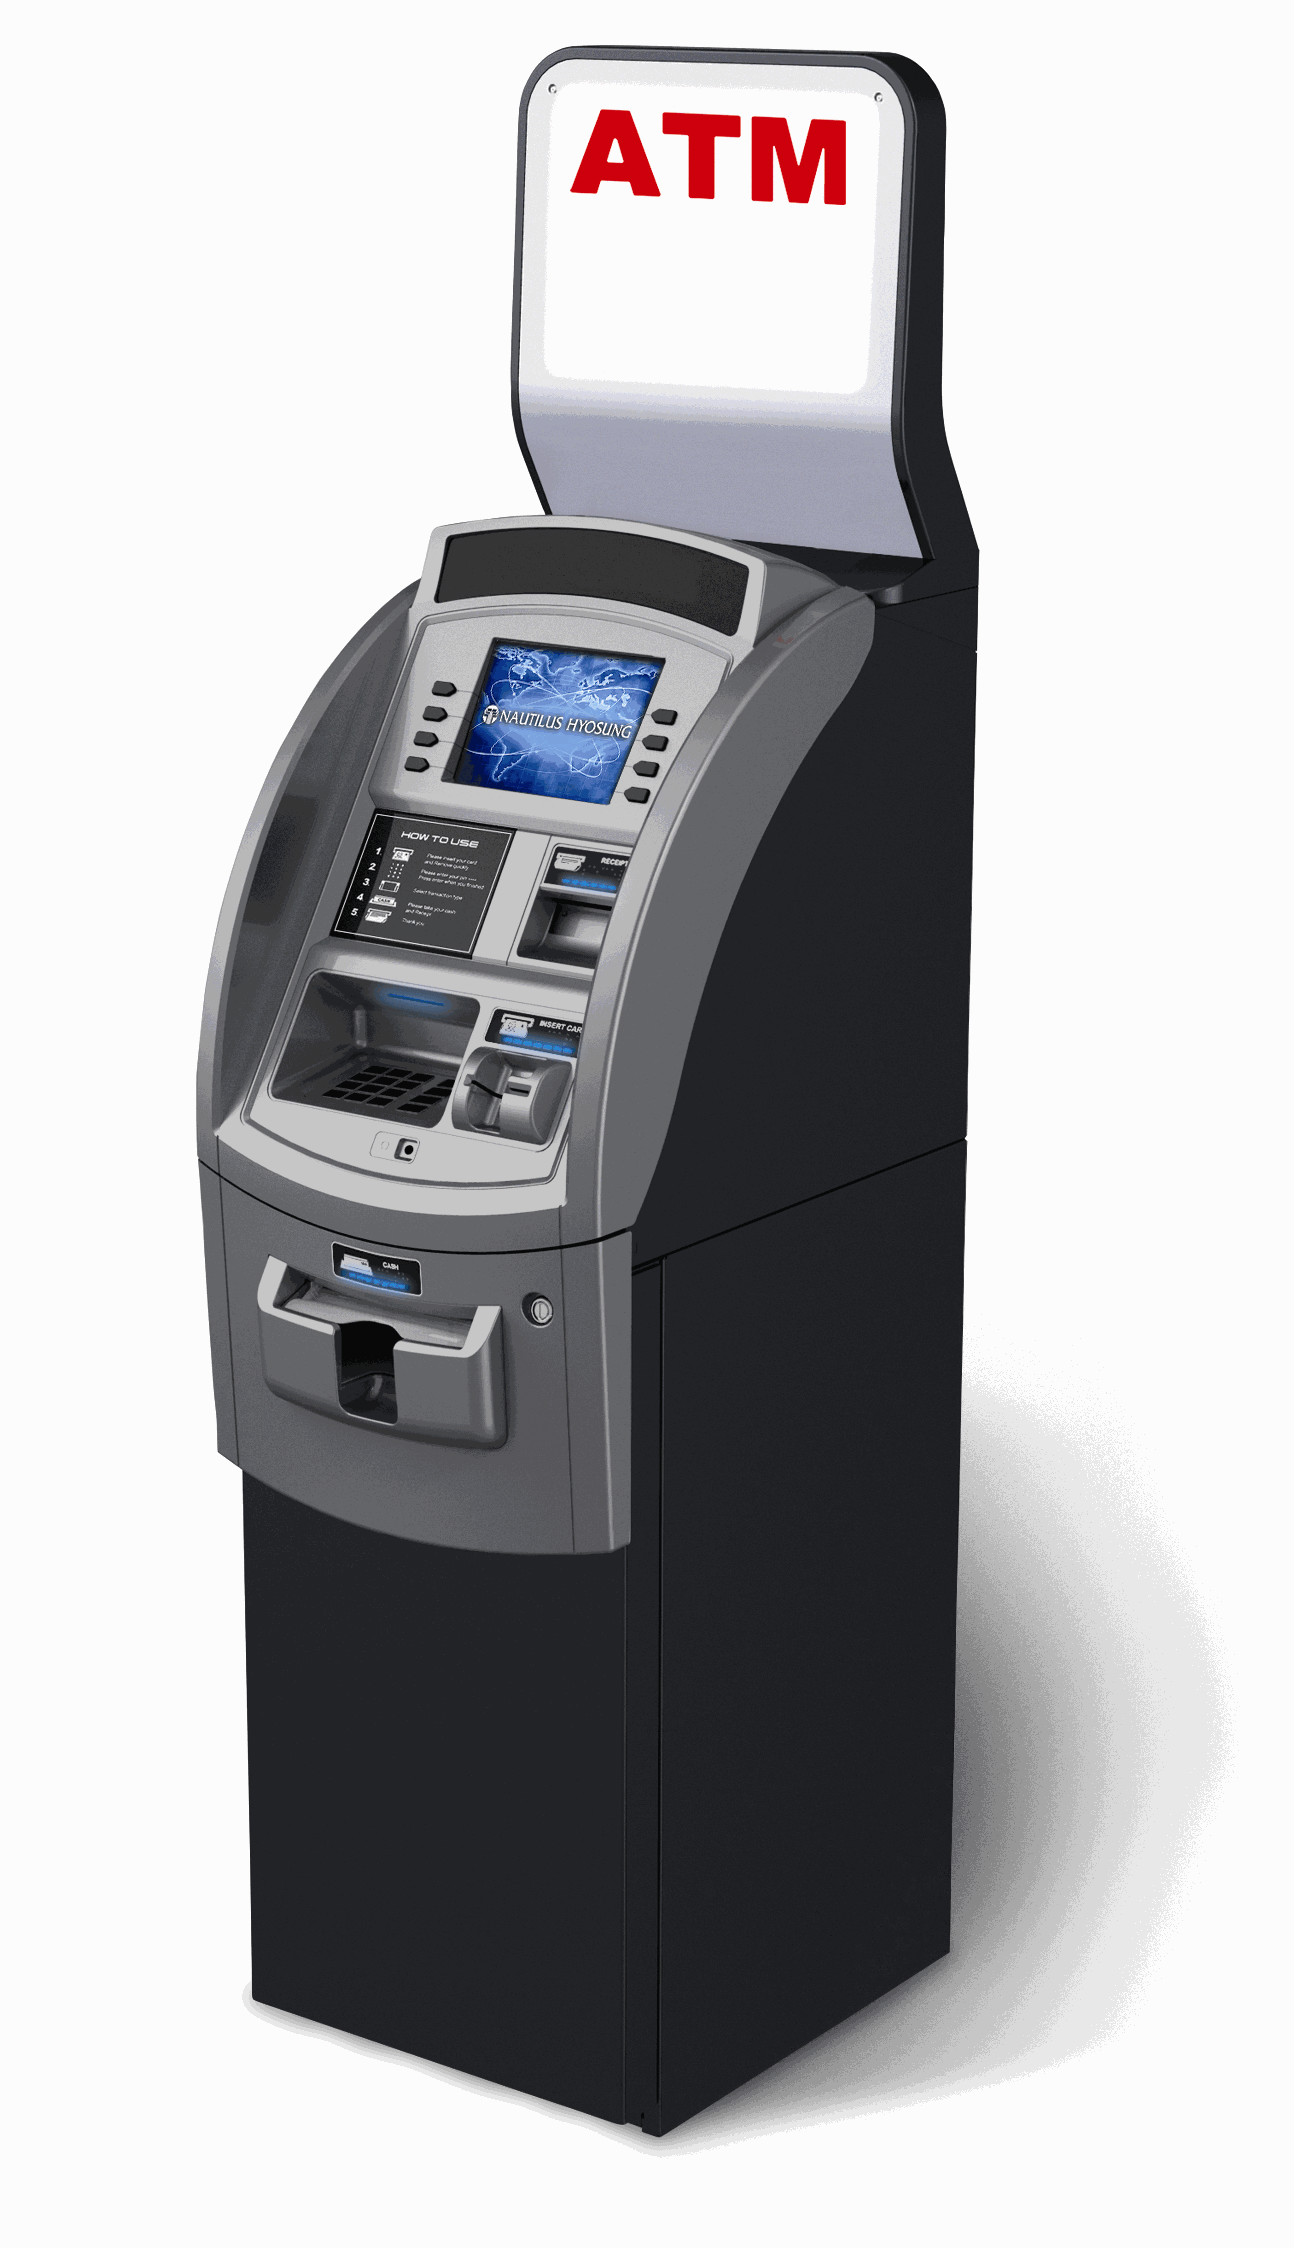 secure atm by image processing Ncr solutions offer payments processing, document imaging and scanning solutions built on a foundation of long-established industry knowledge and consulting expertise, integrated with a full range of high quality imaging transports, scanners, mobile phones and atms, supported by customer service you can trust.